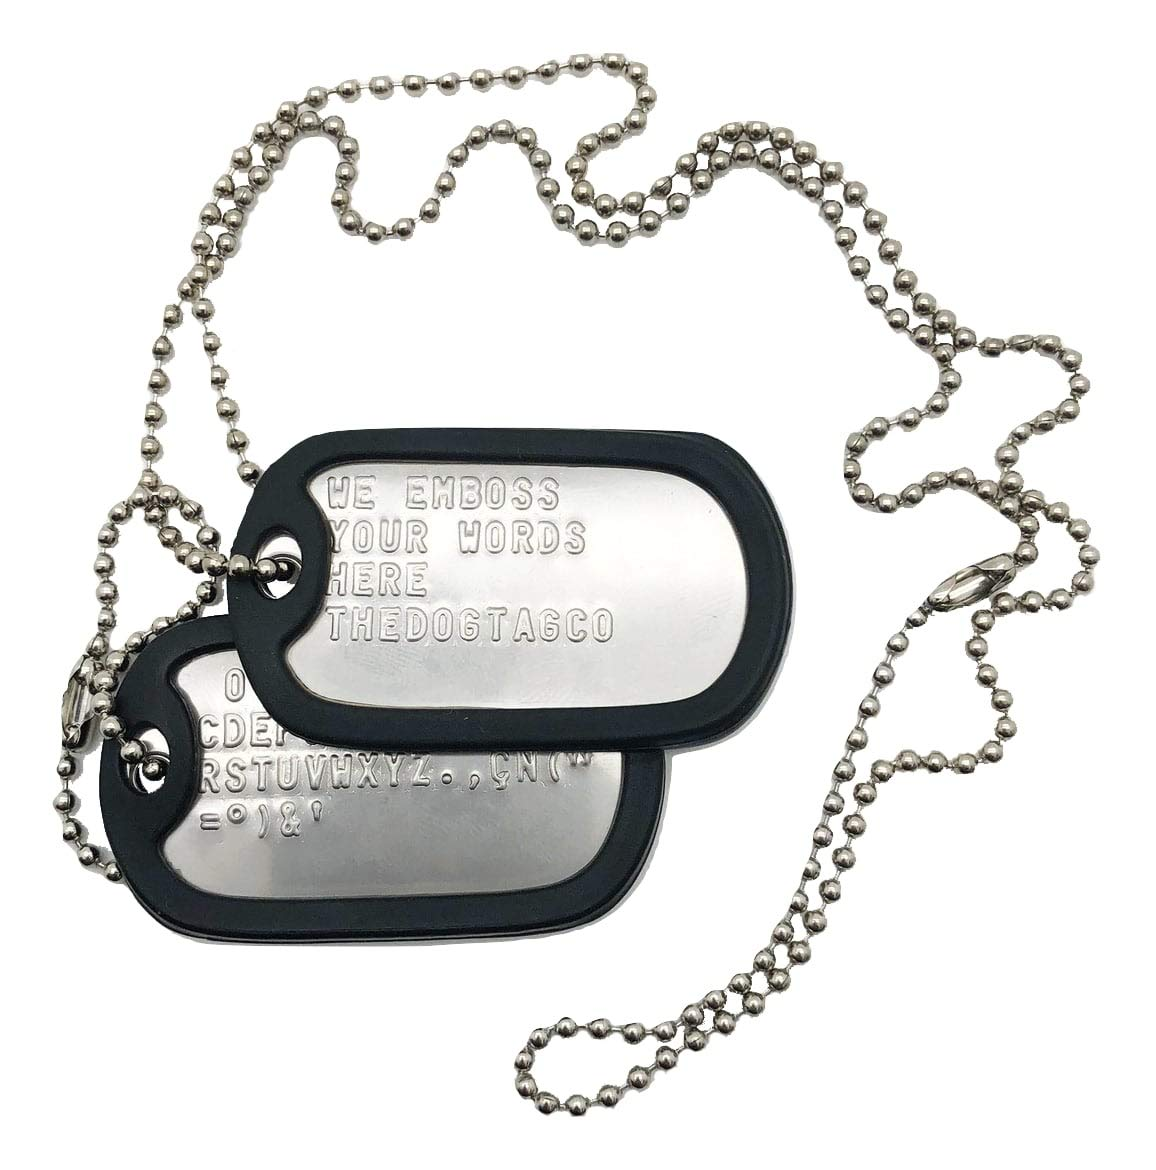 TheDogTagCo Military Dog Tags – Set of 2 Personalised Army Style Dog ID Tags with Ball Chains & silencers Read Description to See How to ADD Personalisation